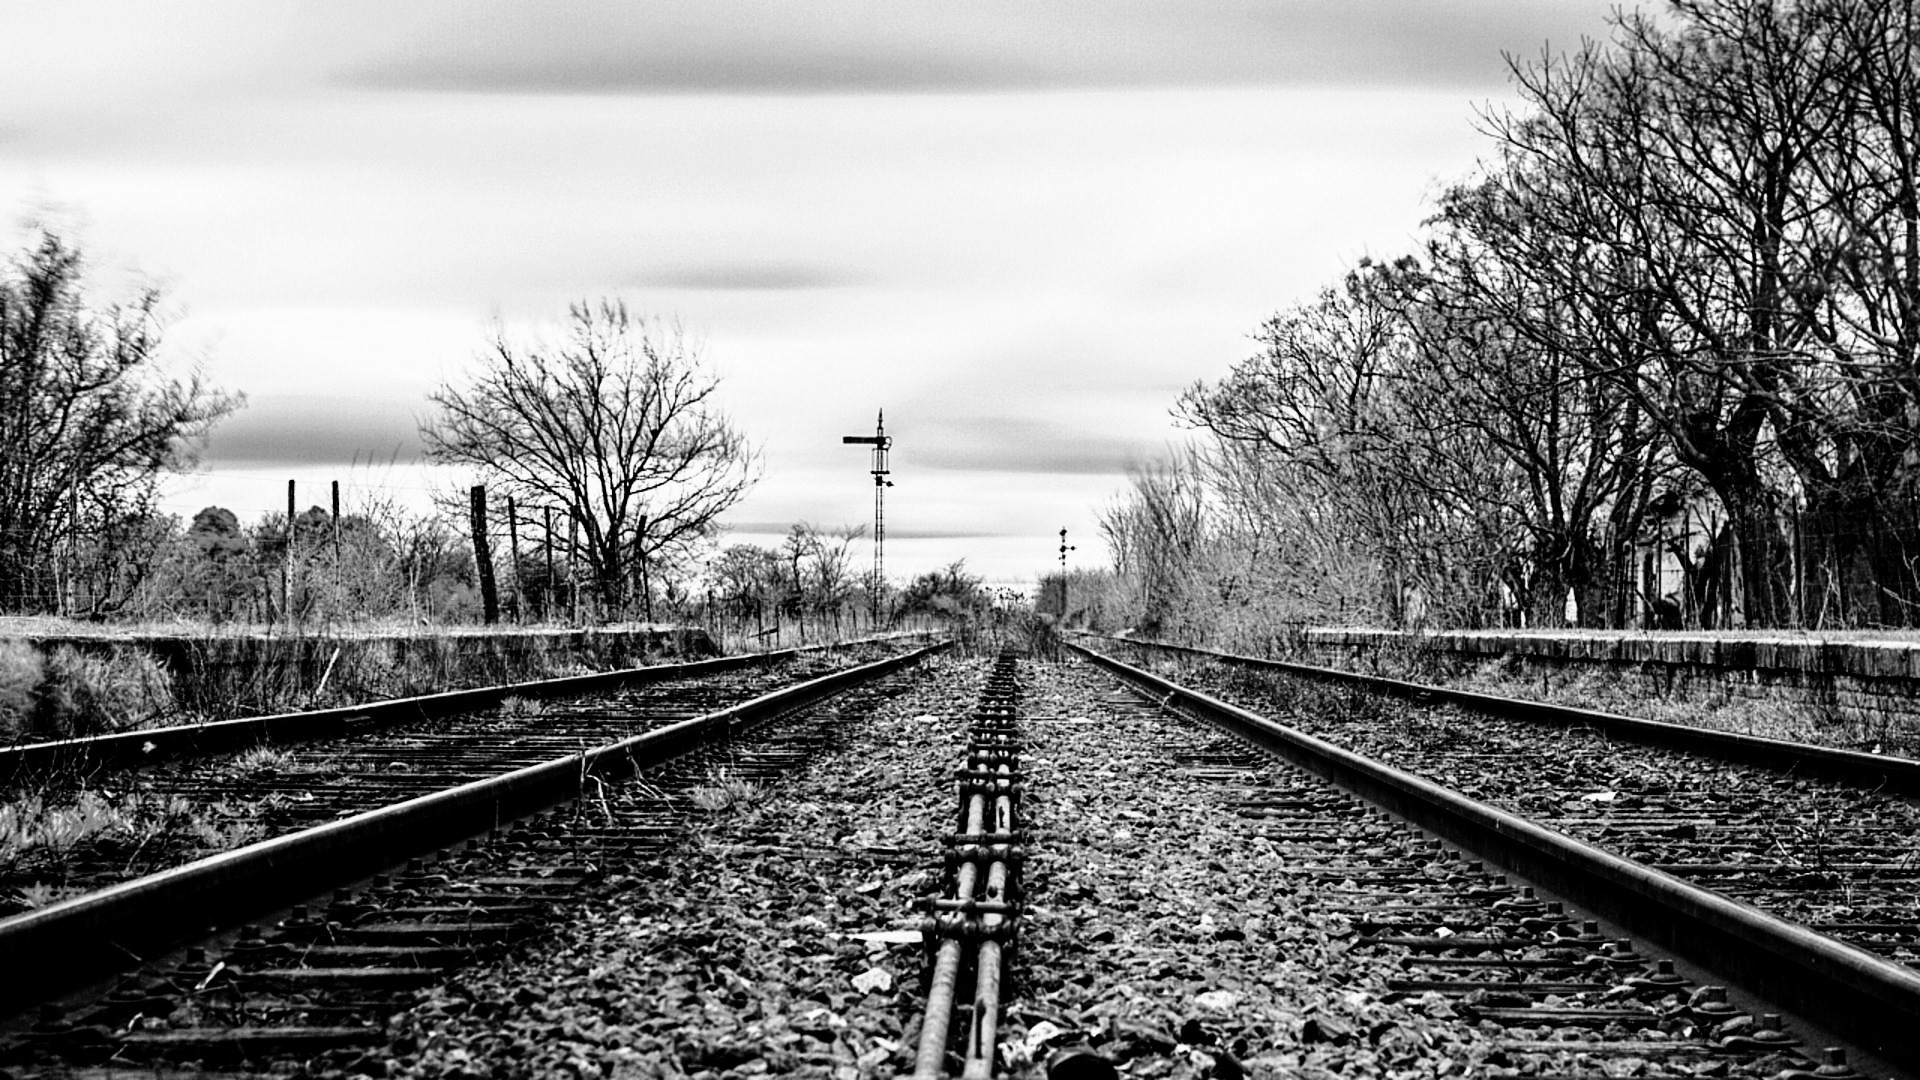 Download Railway Track Black and White Photography HD Wallpaper .